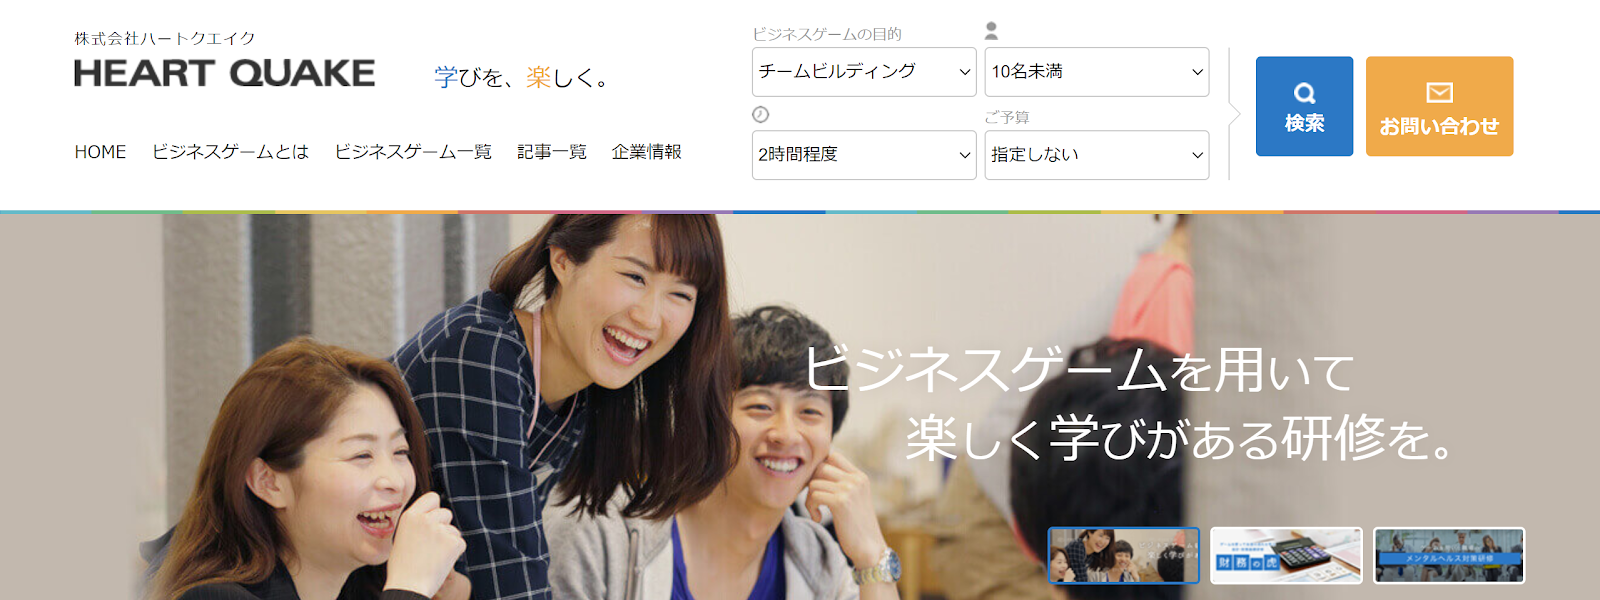 heartquakeのwebsite